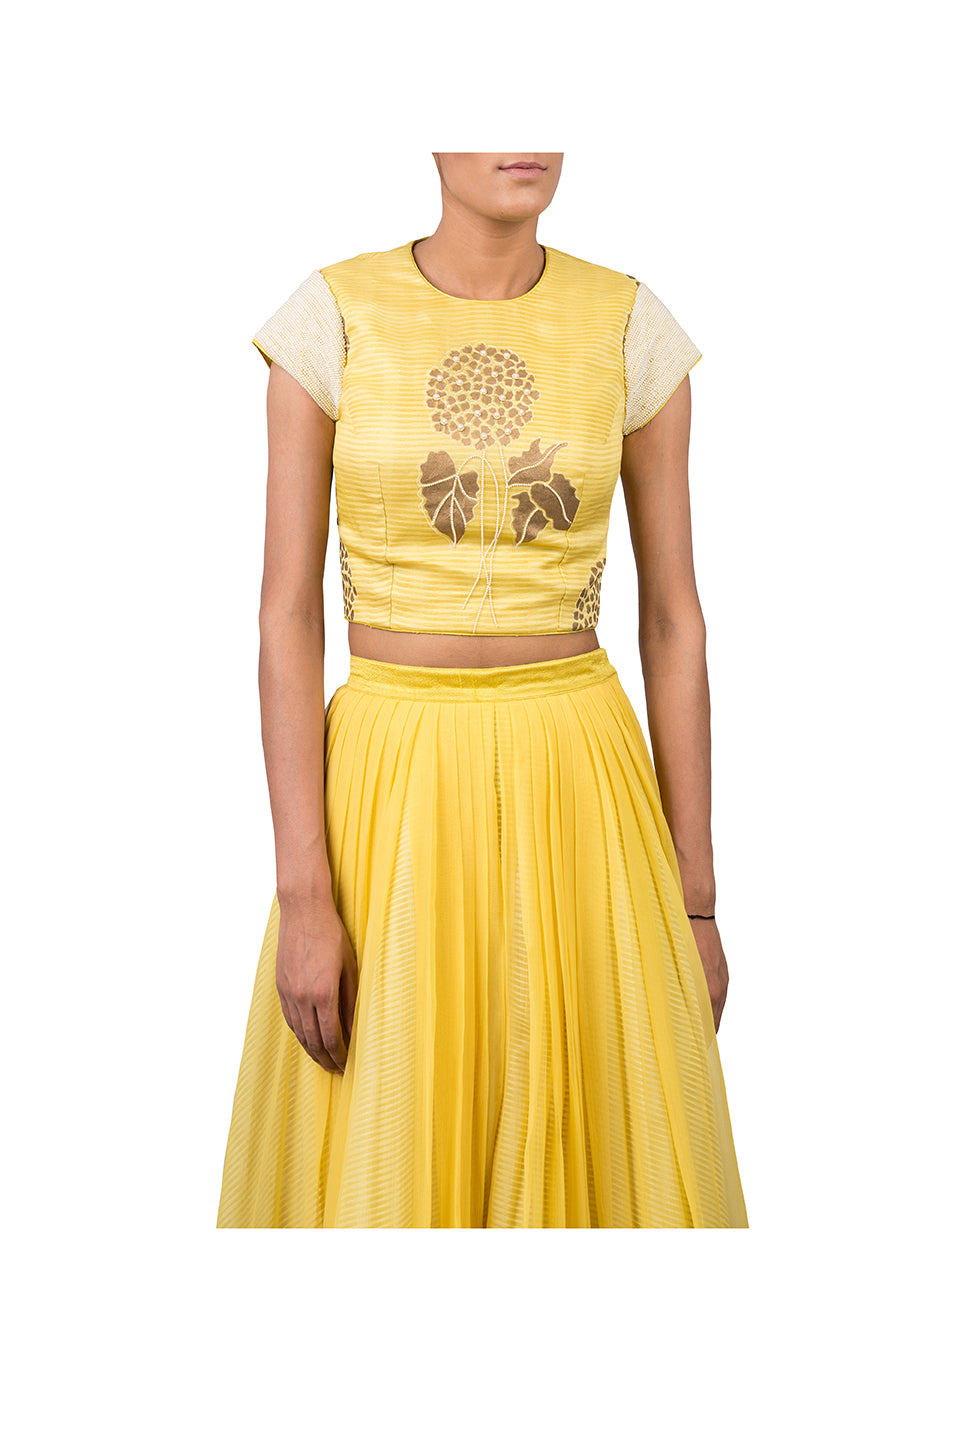 BLOCK PRINTED FOOTBALL LILLY HIGHLIGHTED CROPTOP WITH CHIFFON PLEATED PALAZZO